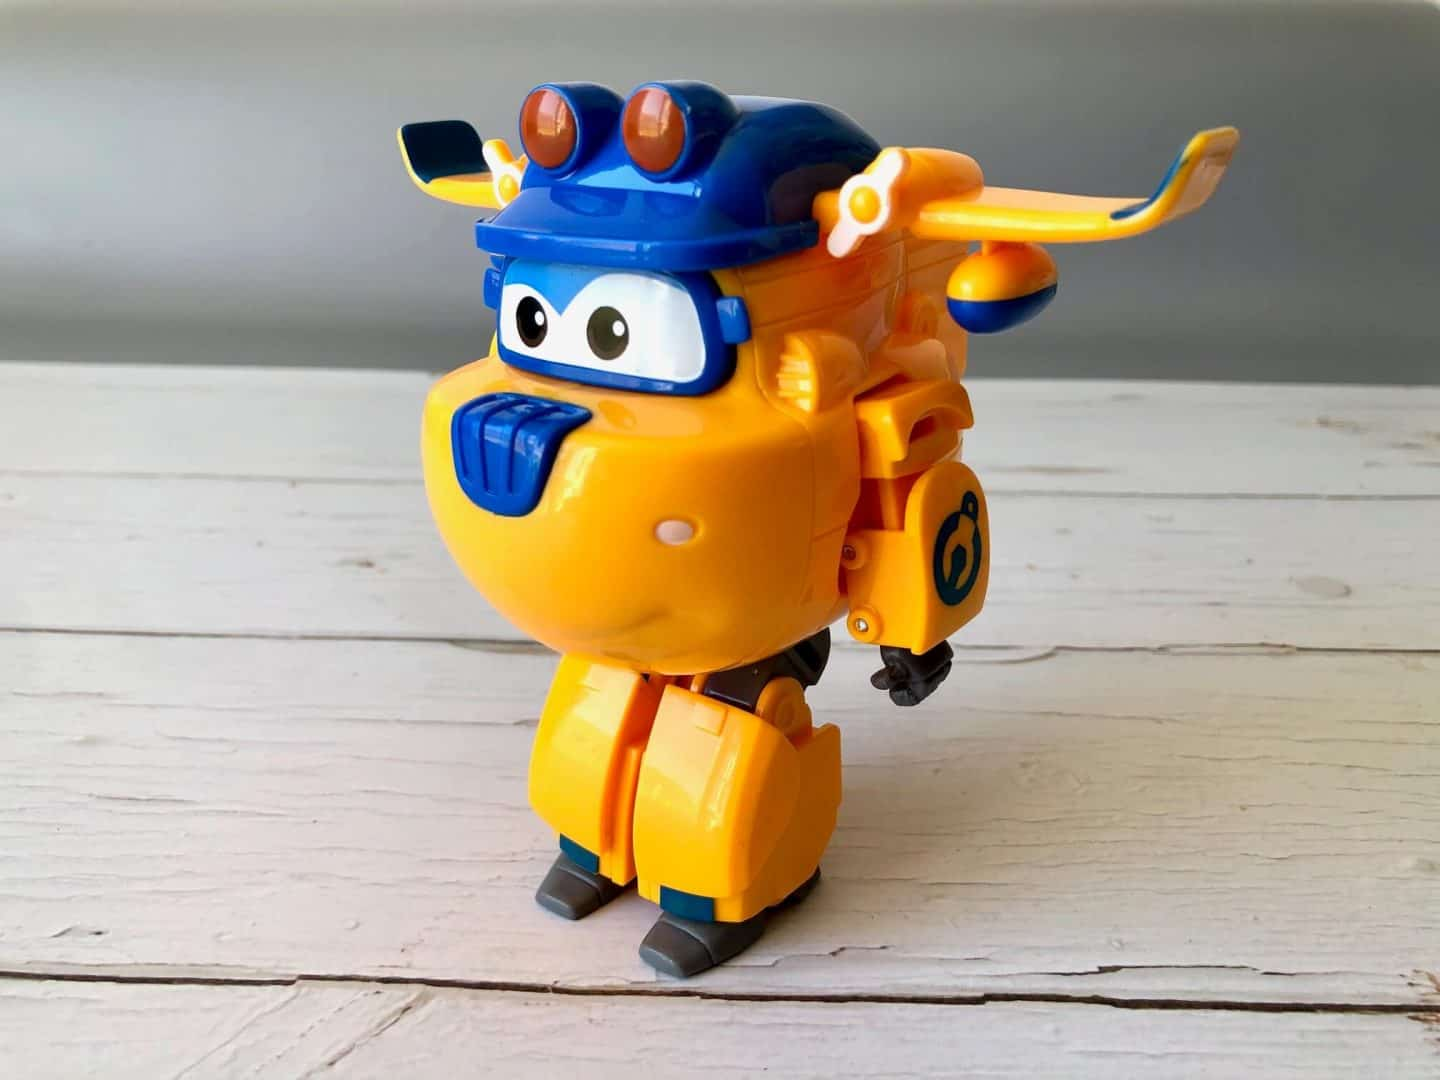 Transforming Build-It Donnie as a robot